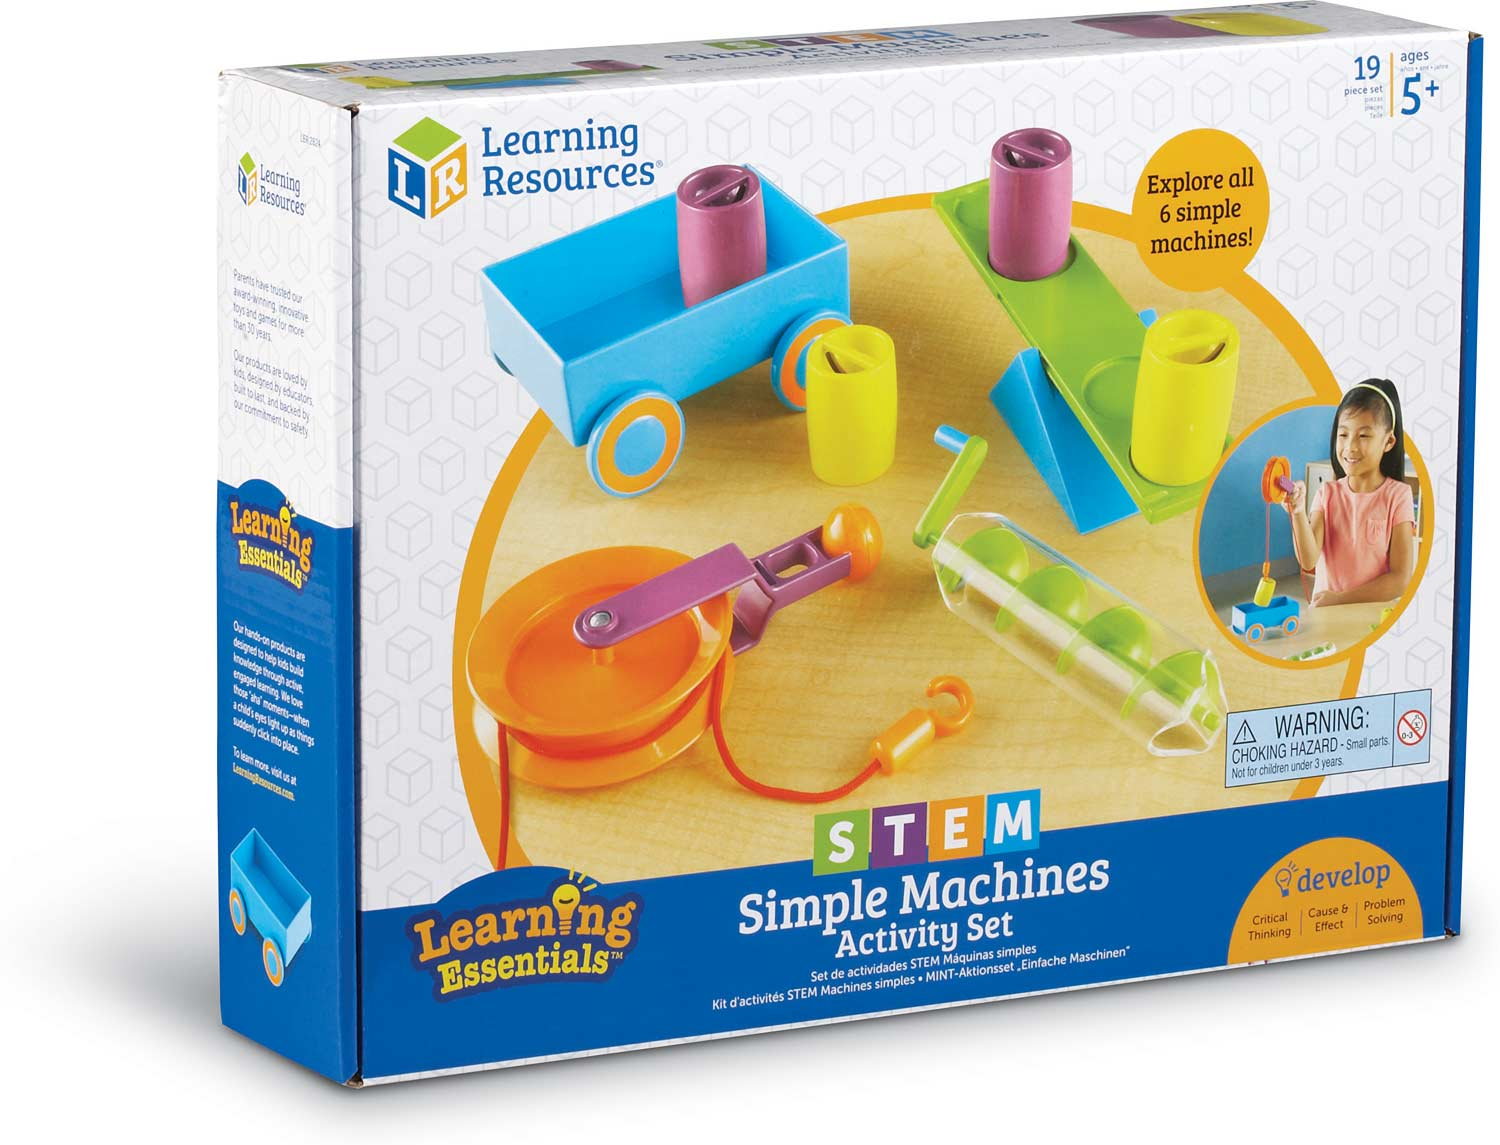 Stem Simple Machines Activity Set Adventure Toys